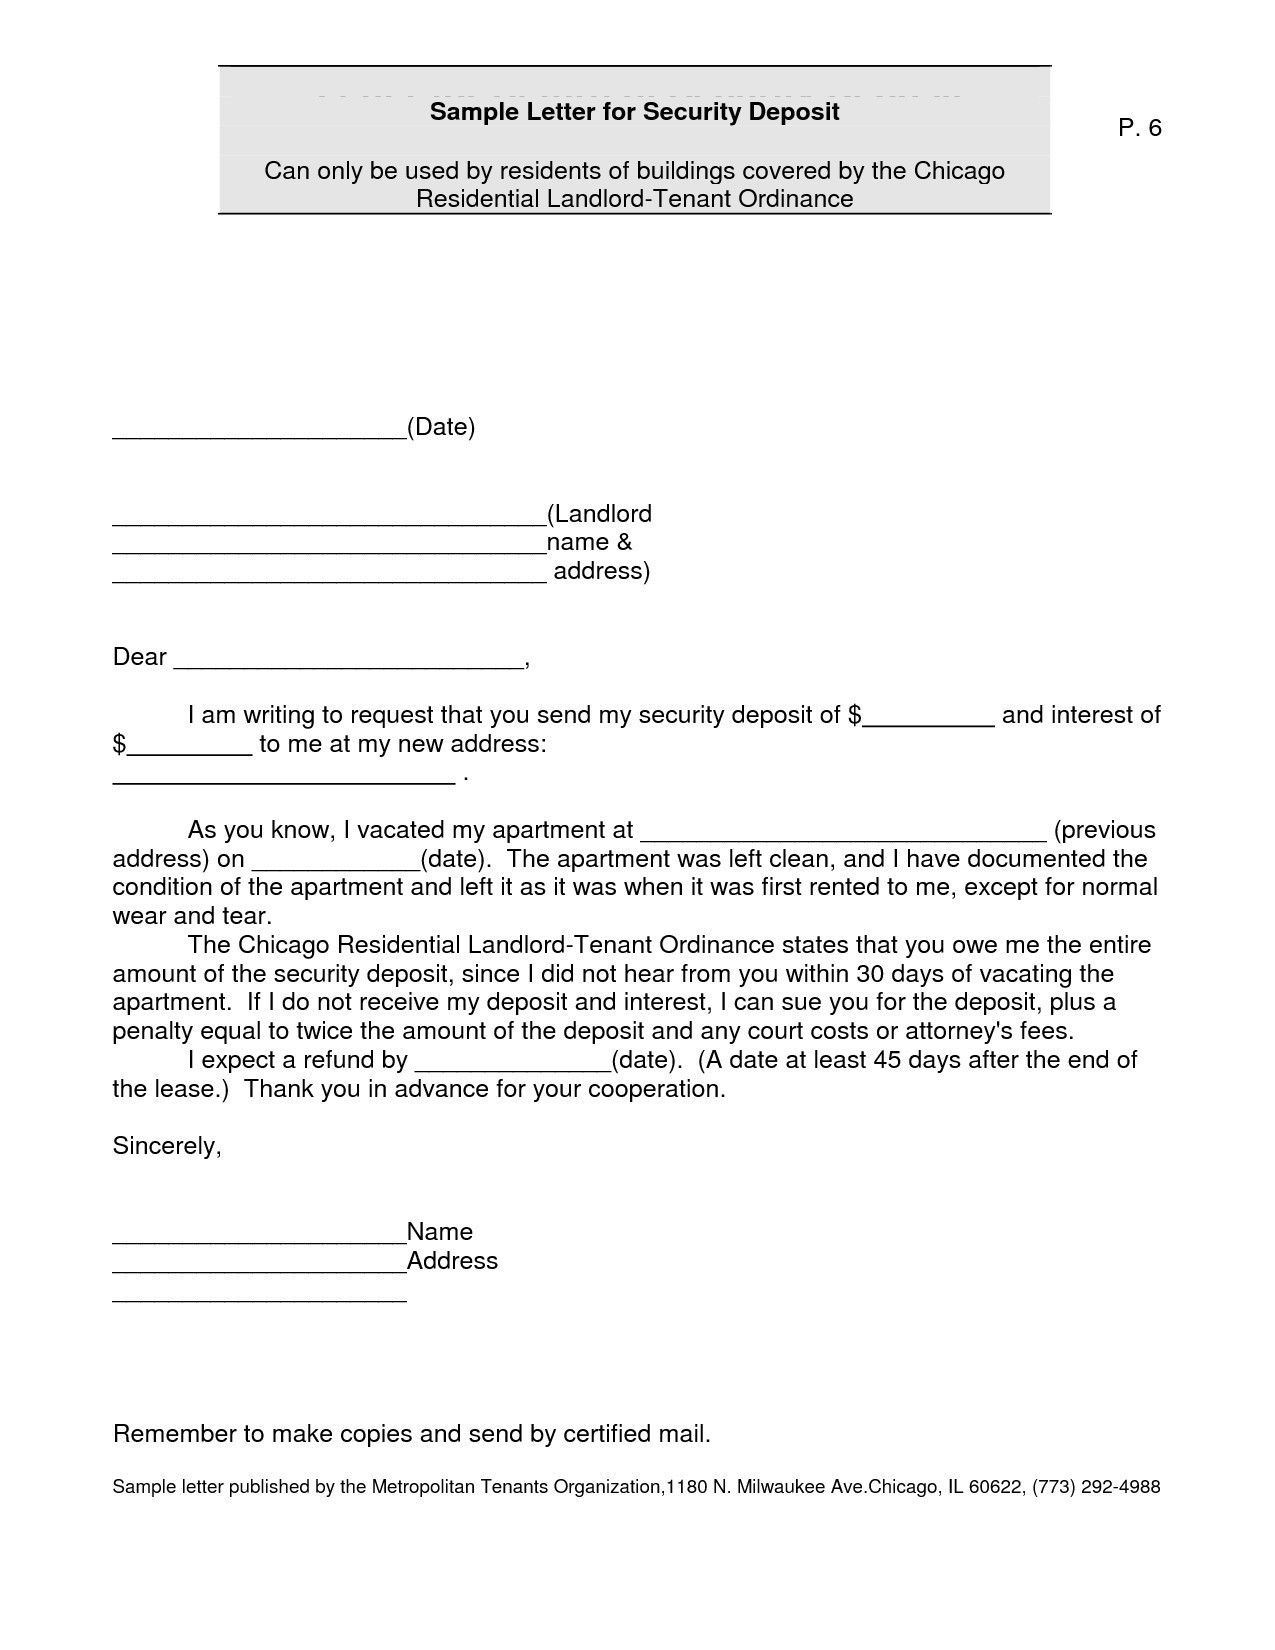 Security Deposit Refund Letter Template Collection | Letter Templates